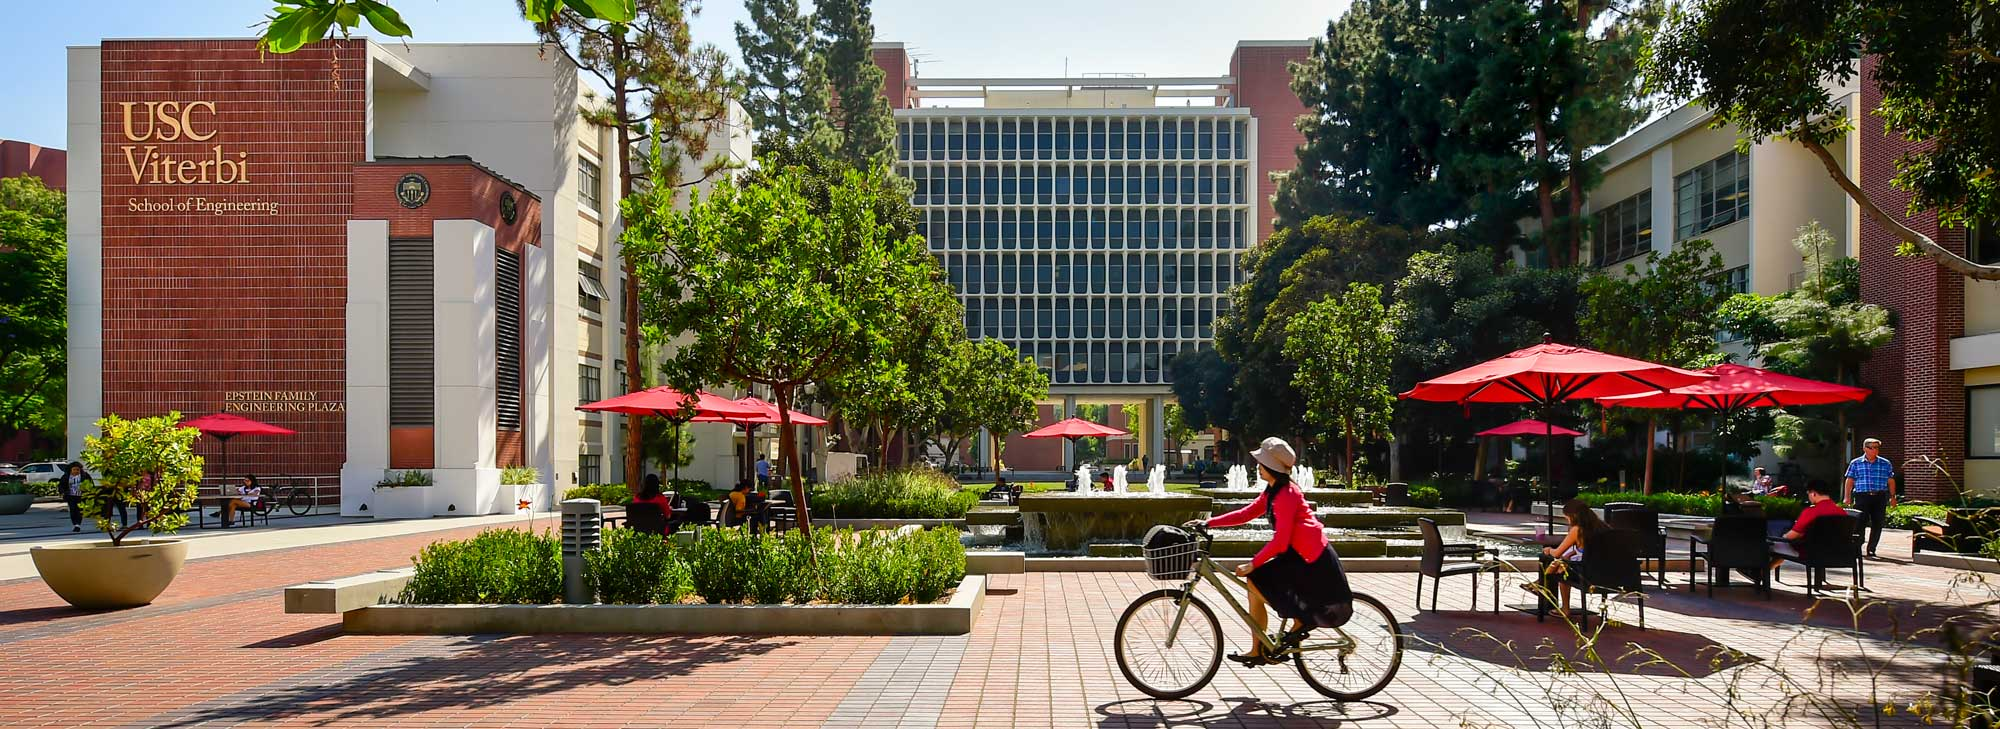 Girl riding a bike at USC